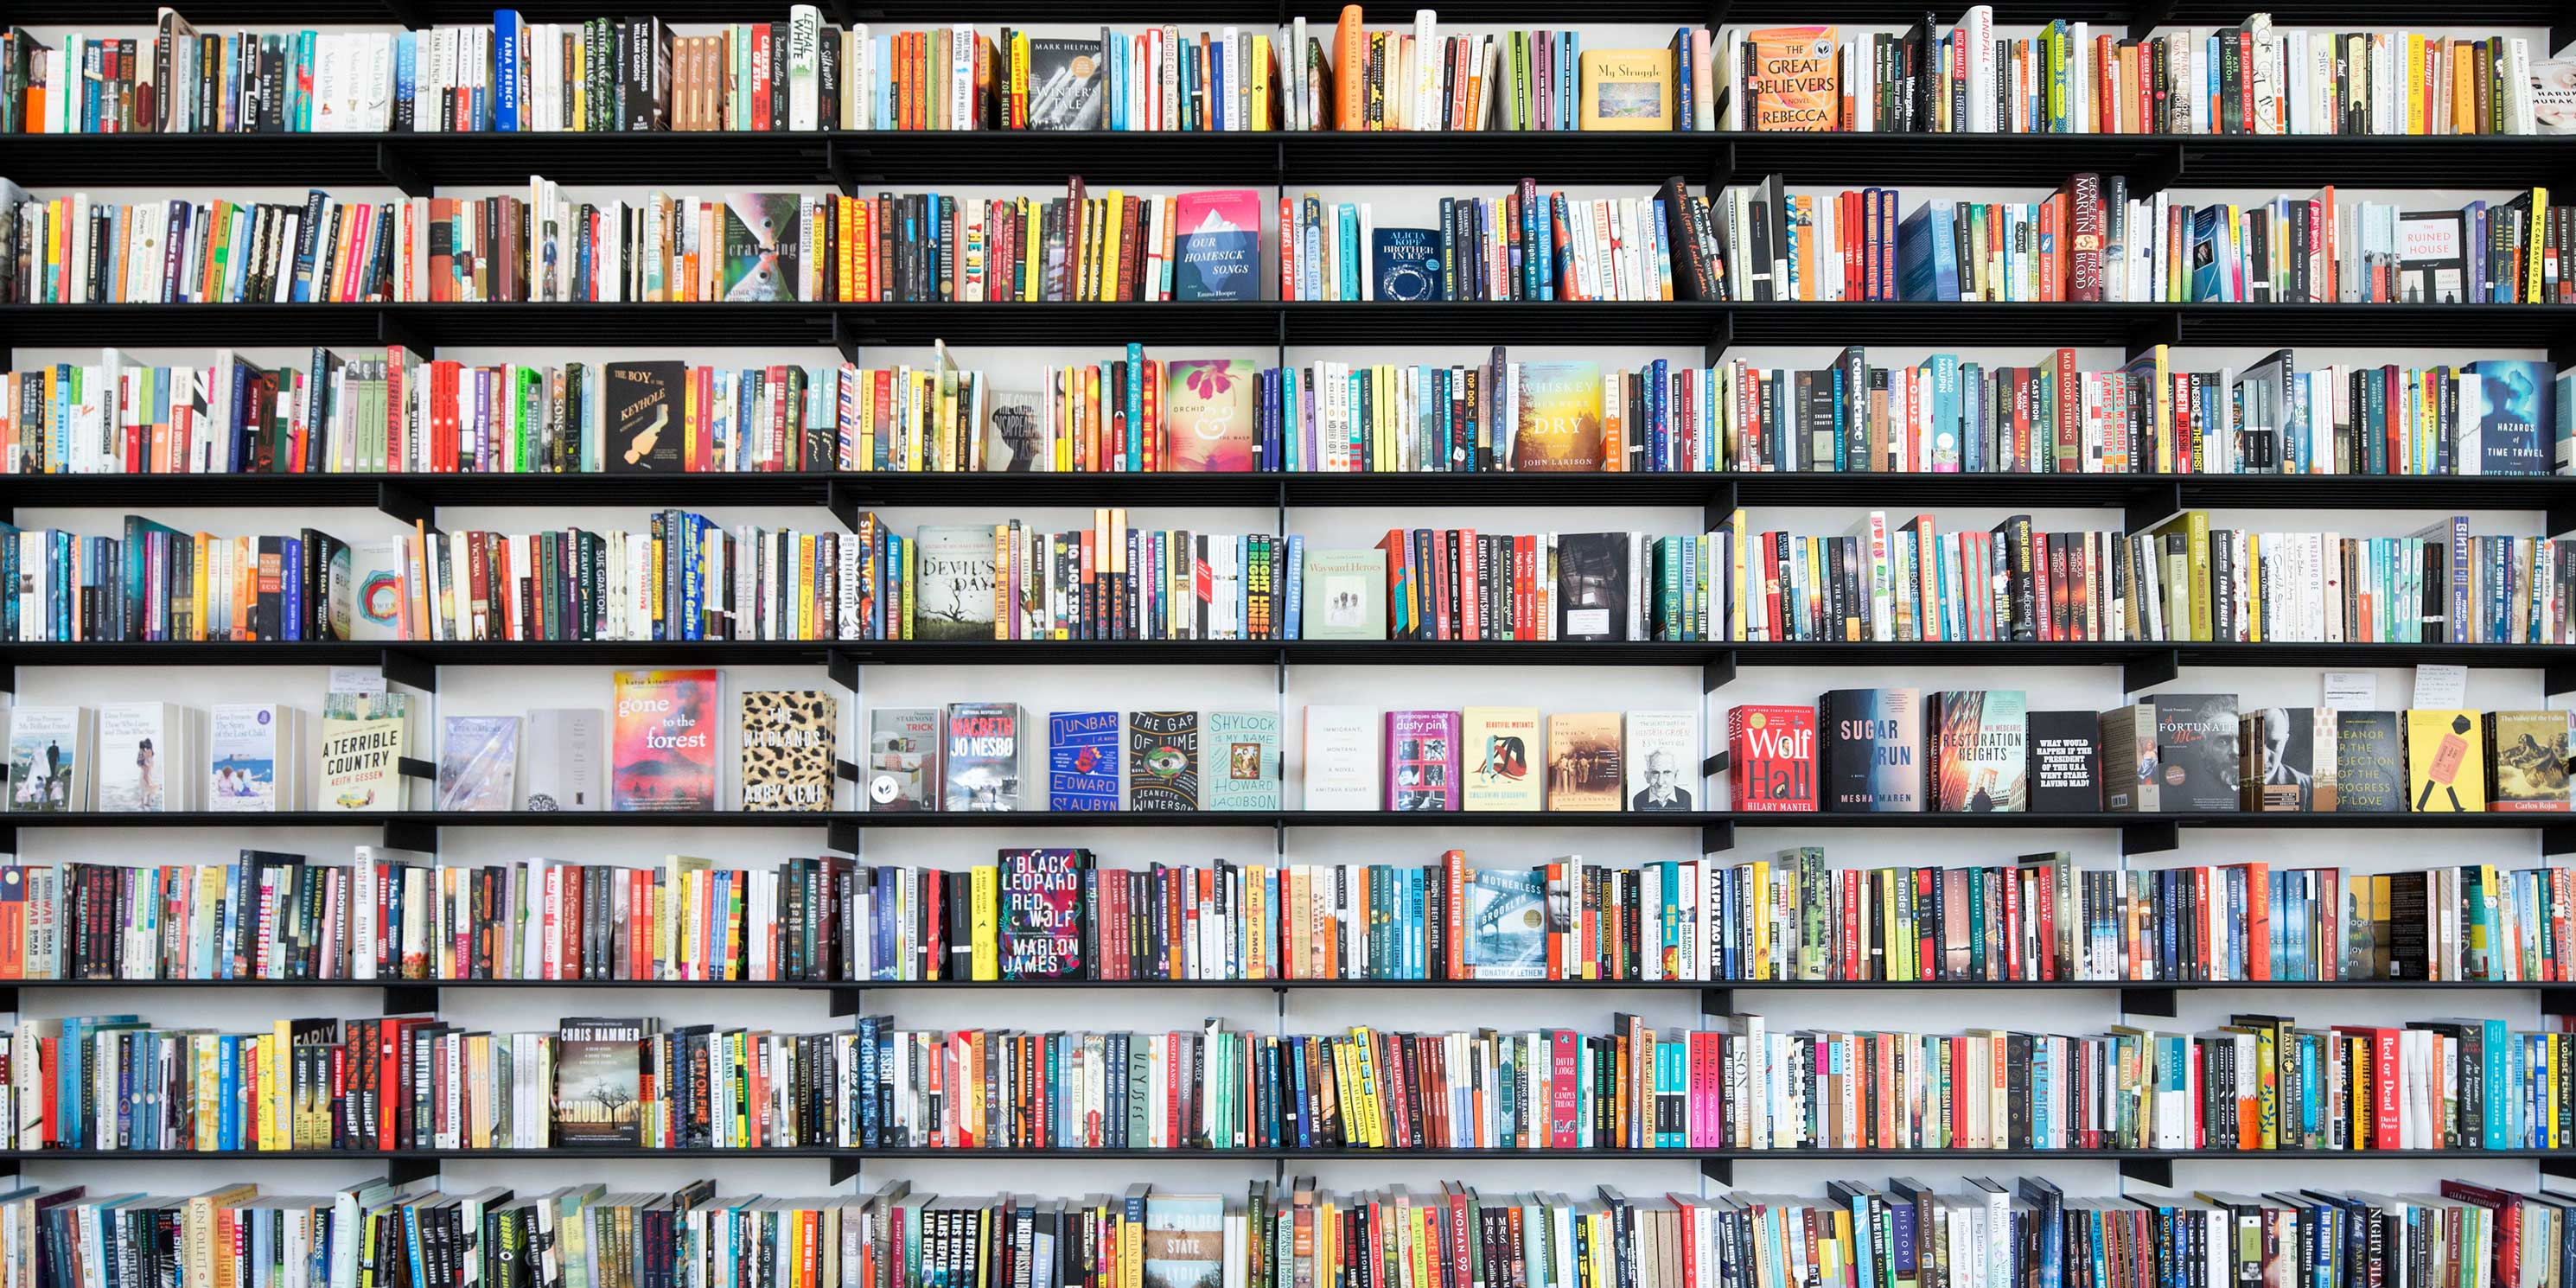 book shelves filled with books at the Center for Fiction in Brooklyn, New York